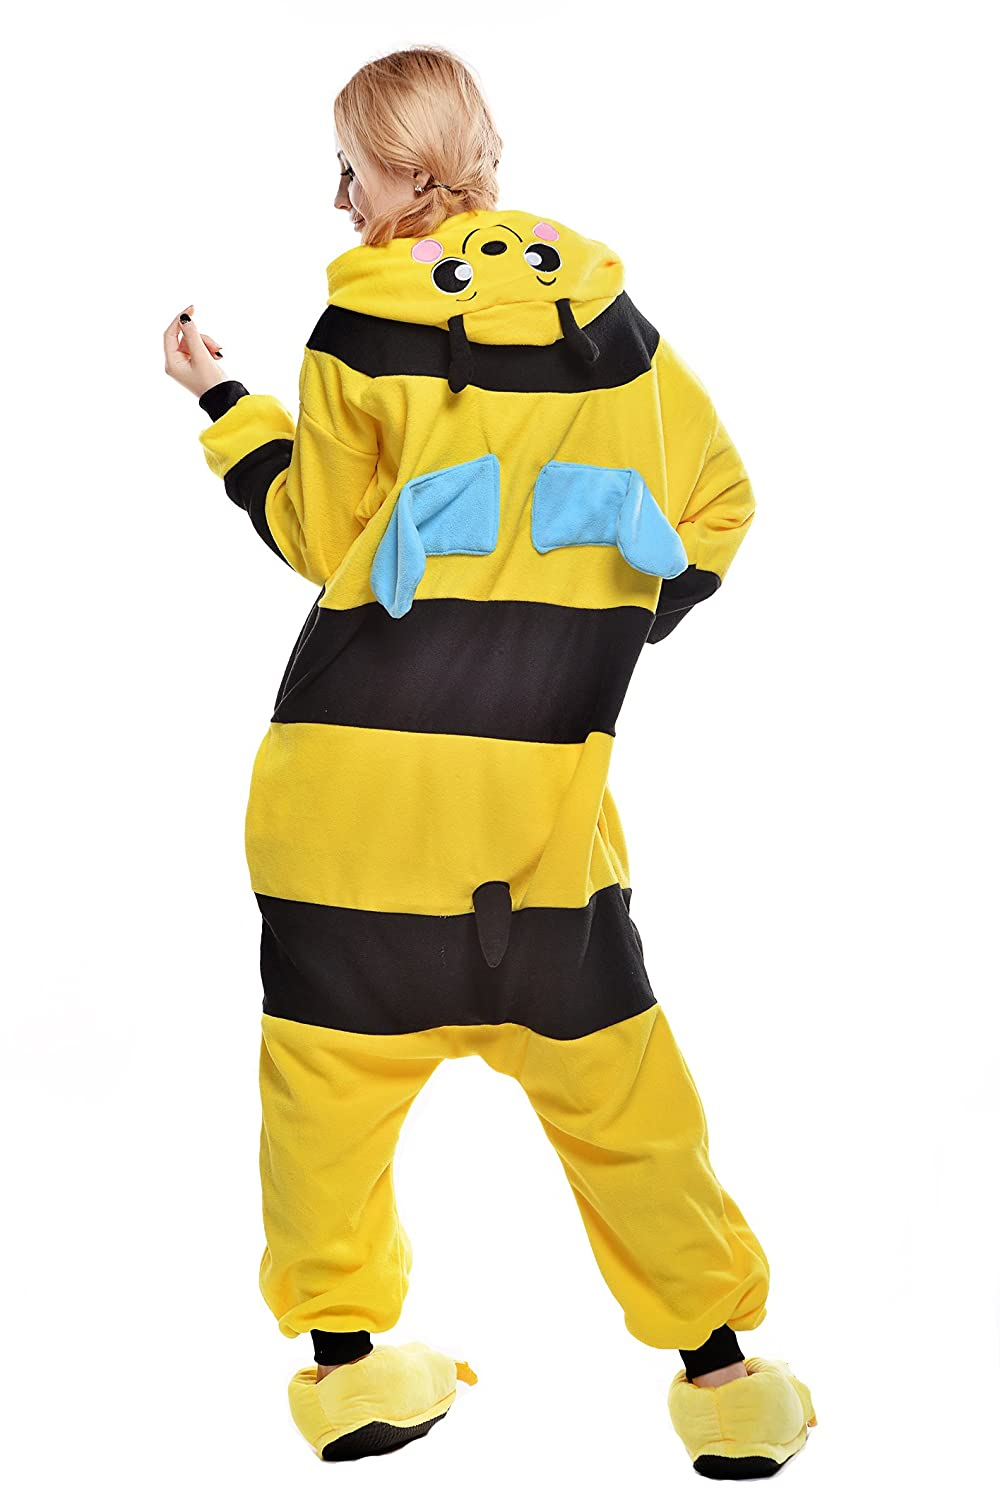 Amazon.com: NEWCOSPLAY Halloween Unisex Adult Yellow Bee Cosplay Costumes: Clothing